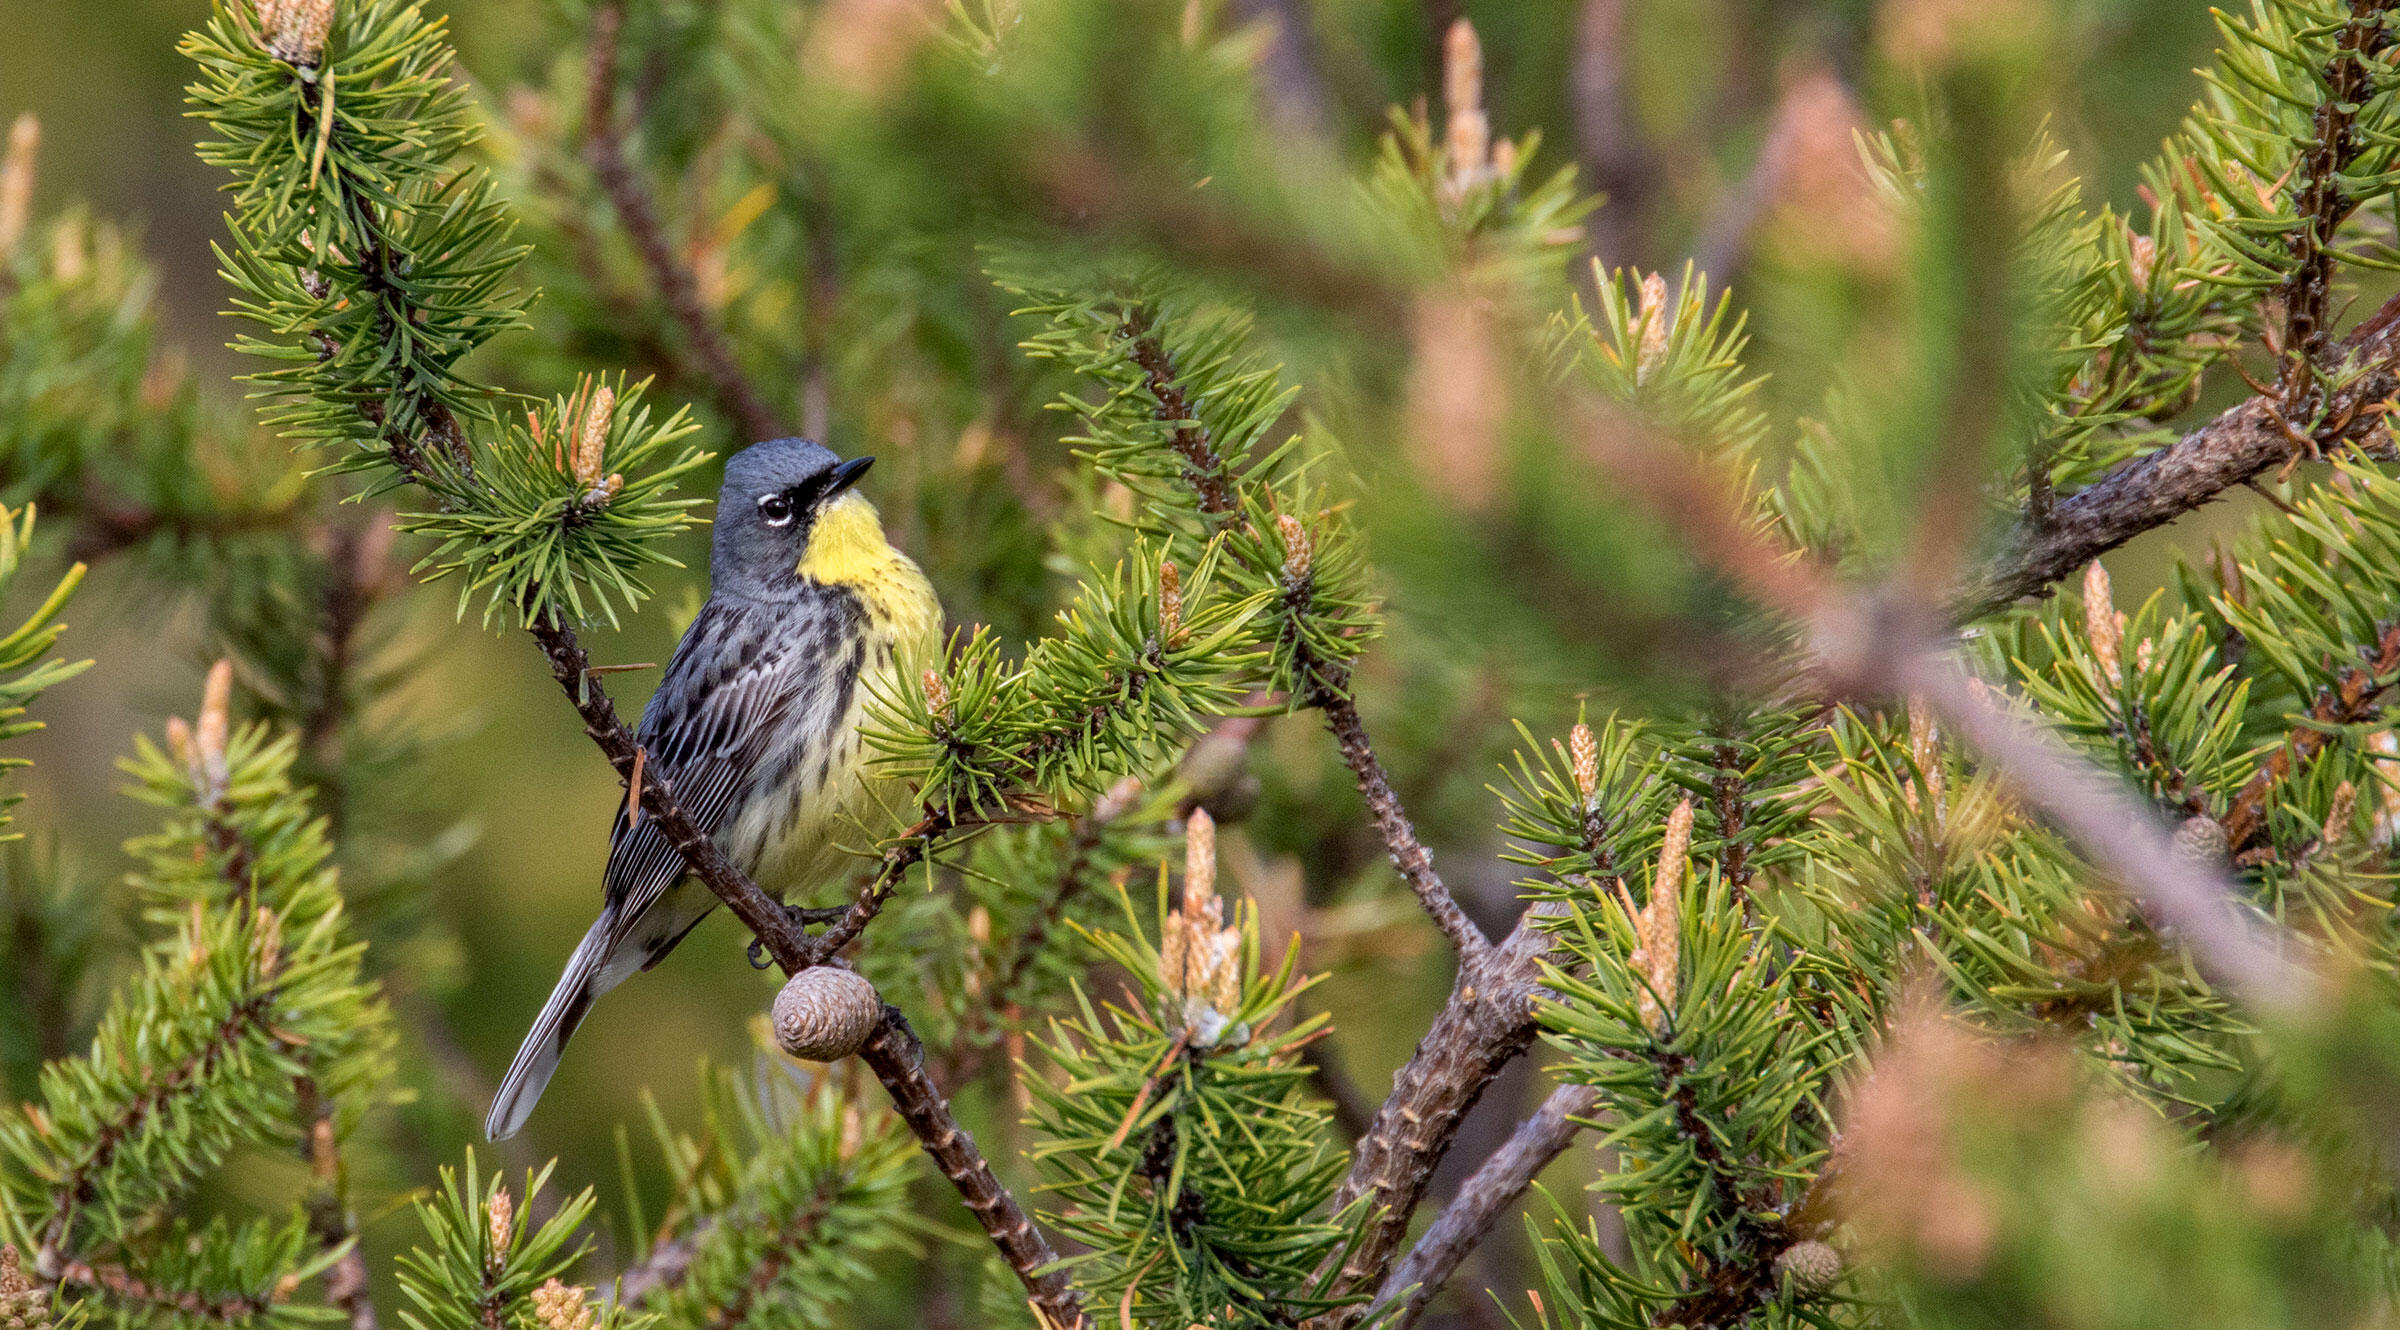 Conserving Kirtland's Warblers means maintaining the young jack pine forests where they nest. Eric Wengert/Alamy